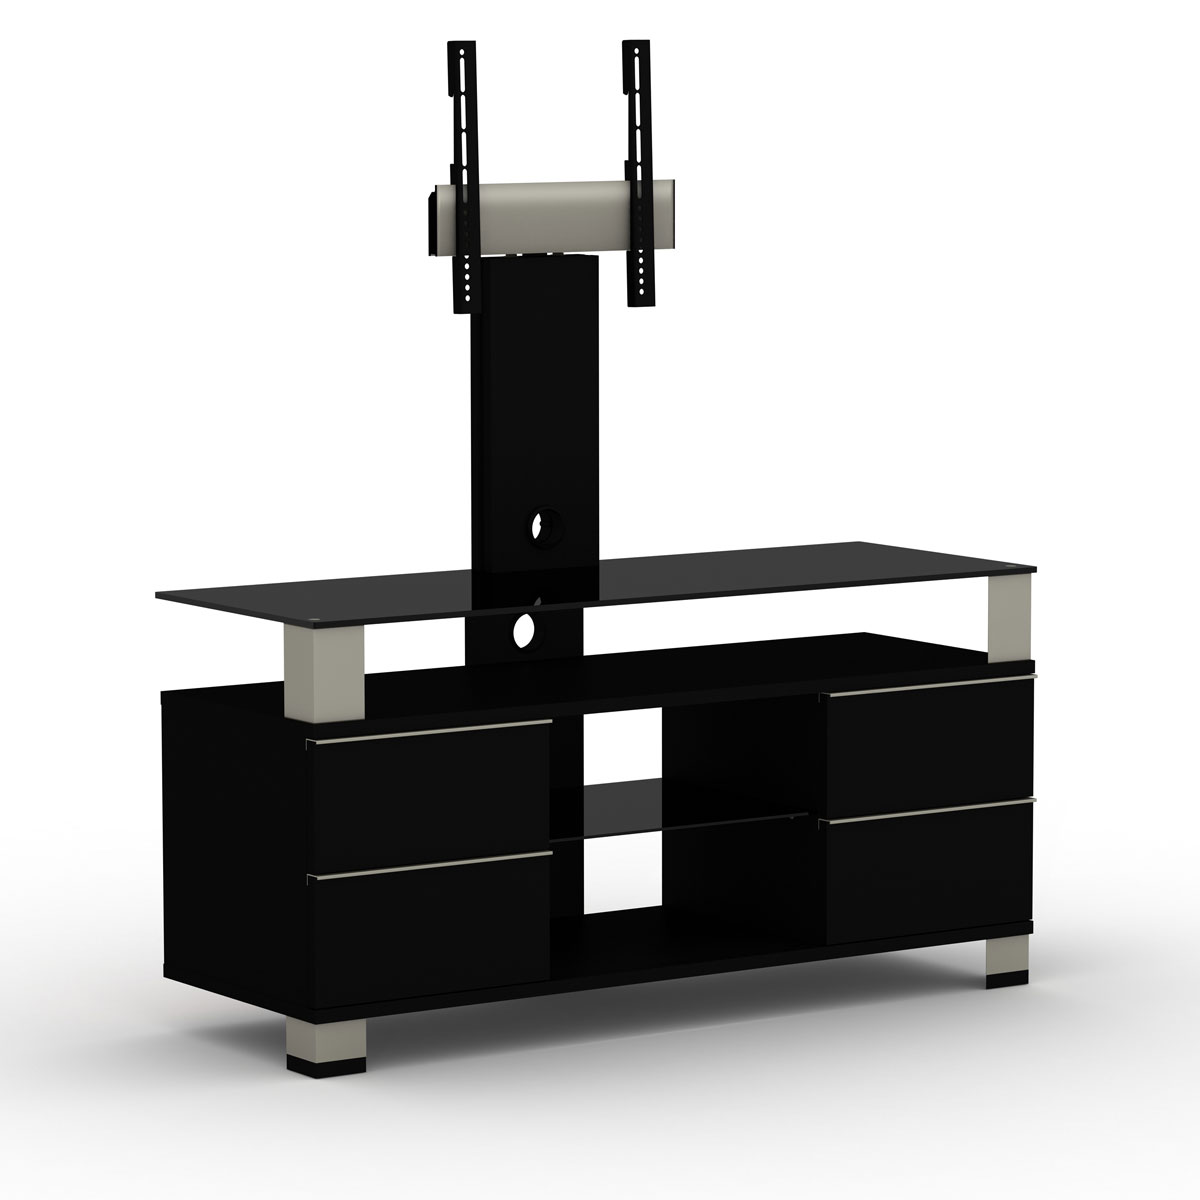 elmob pone pn 120 02f noir meuble tv elmob sur ldlc. Black Bedroom Furniture Sets. Home Design Ideas